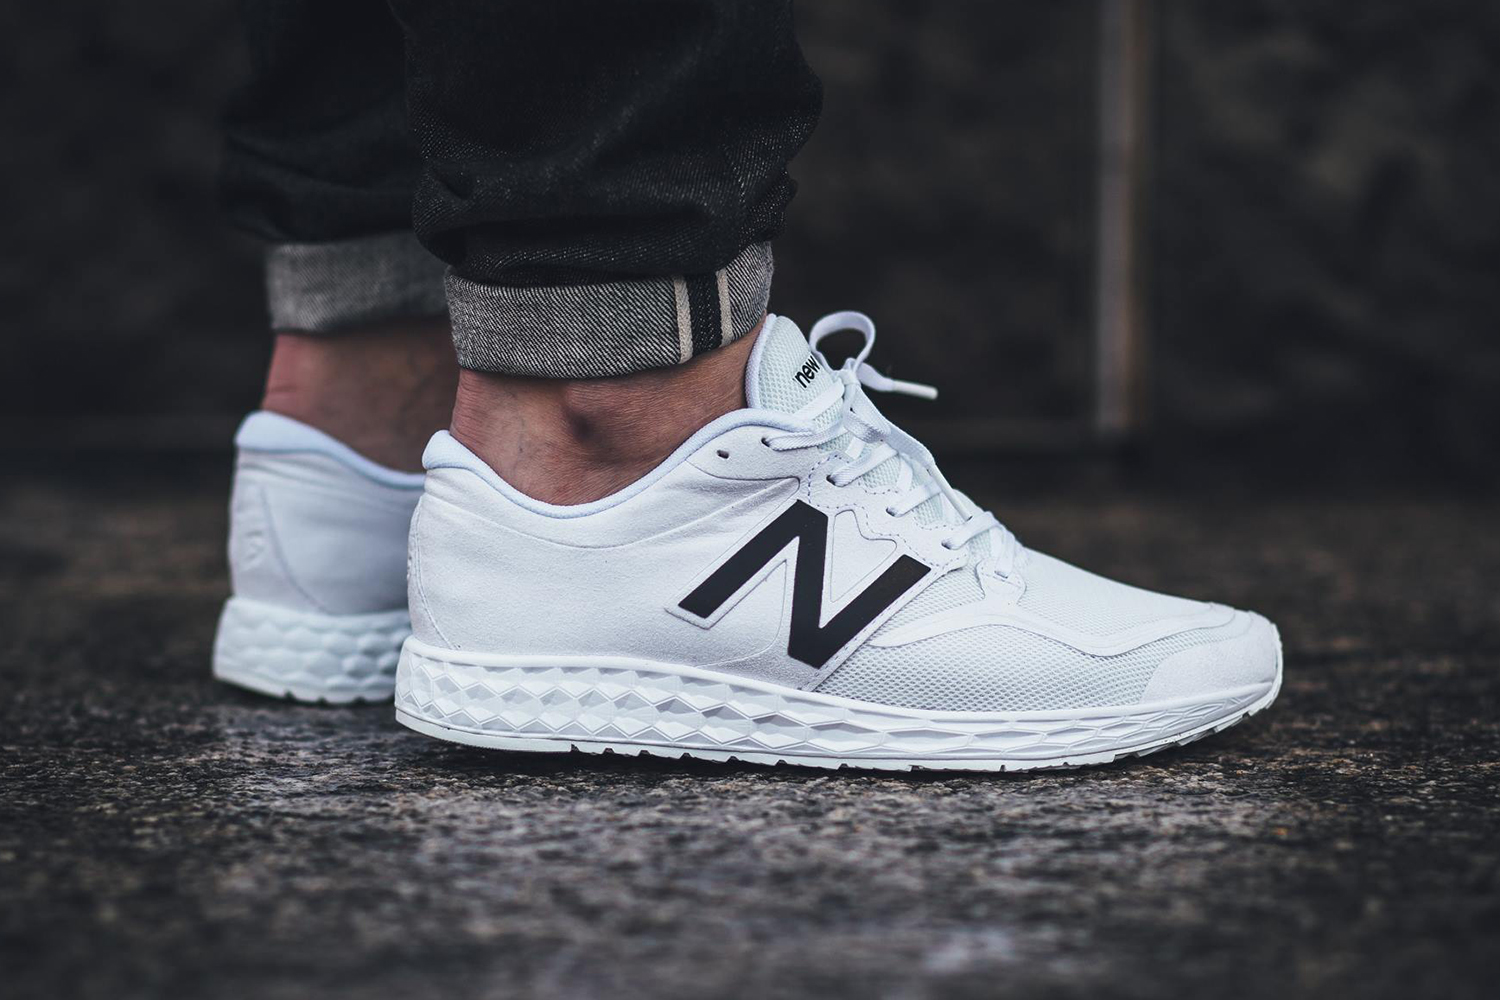 New Balance Gives the ML1980 a Clean White Makeover